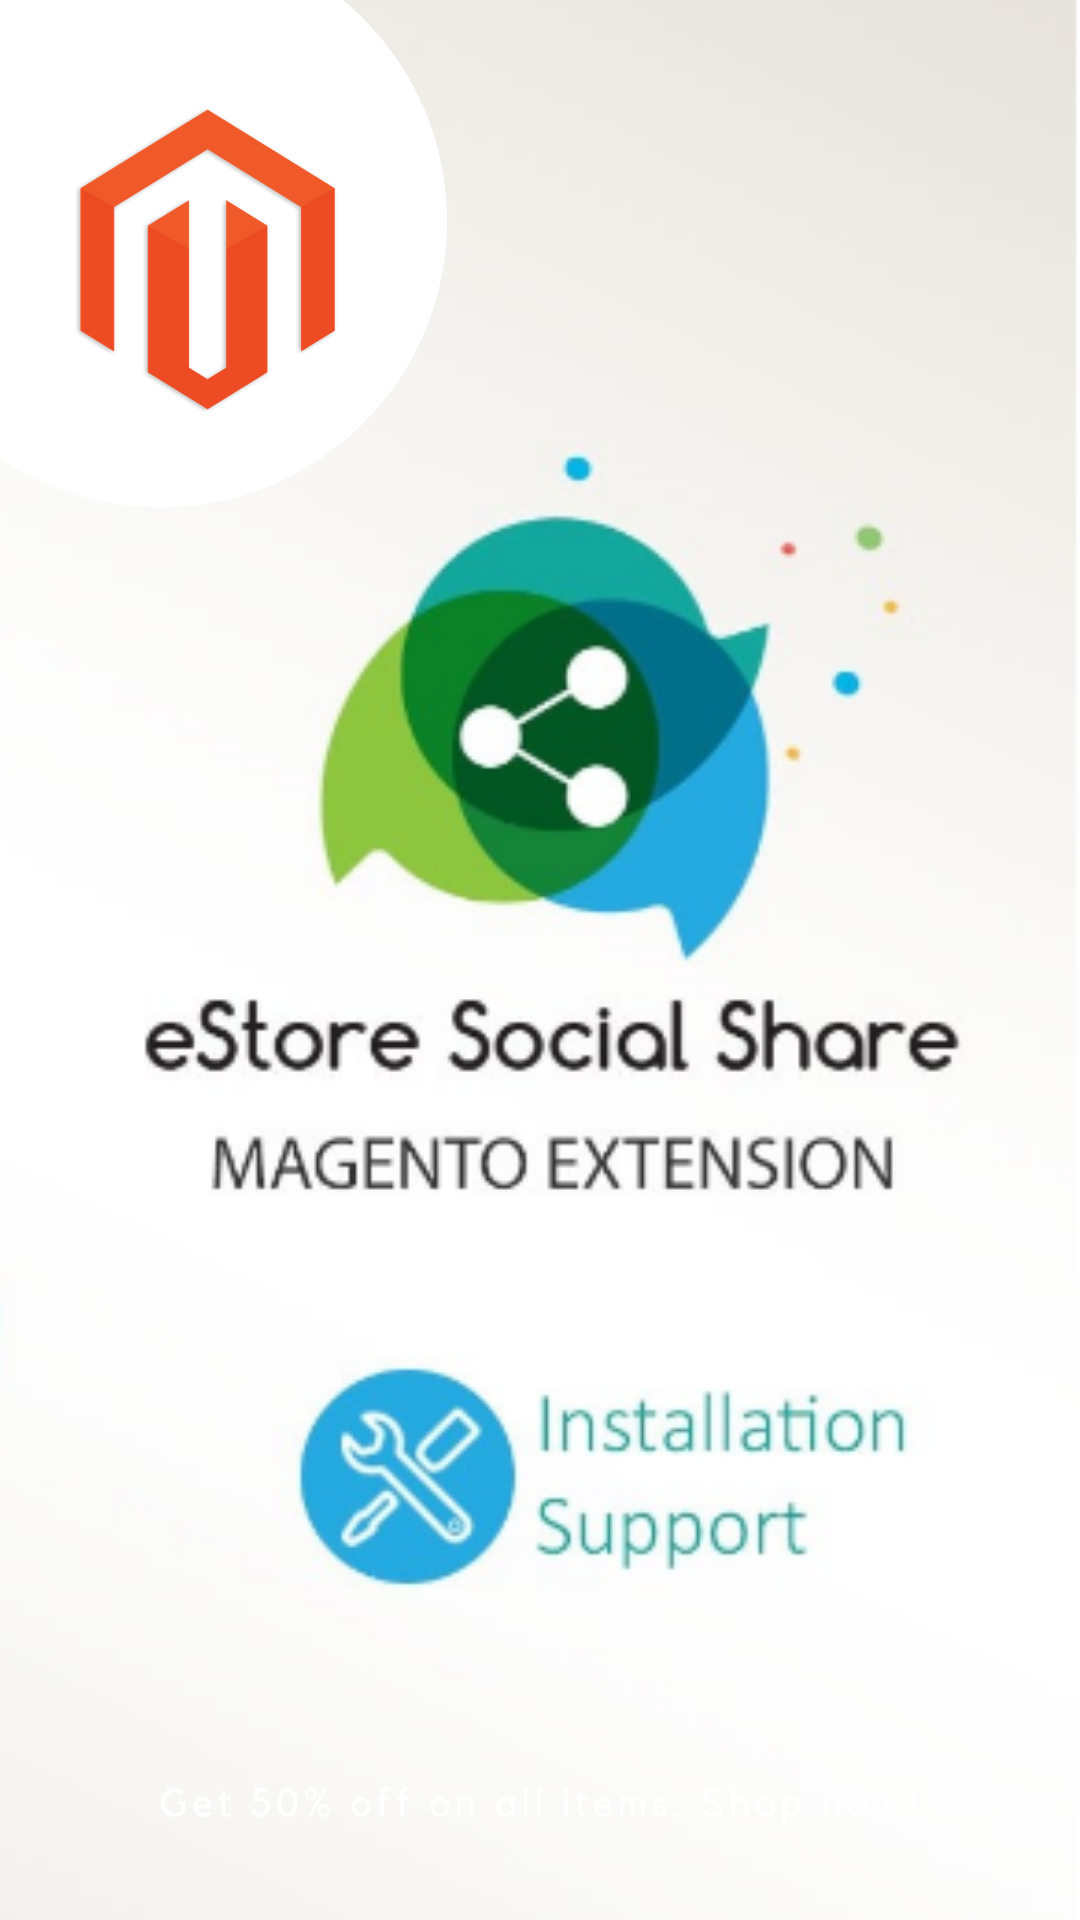 eStoreSocialShare is a Magento1Extension that allows